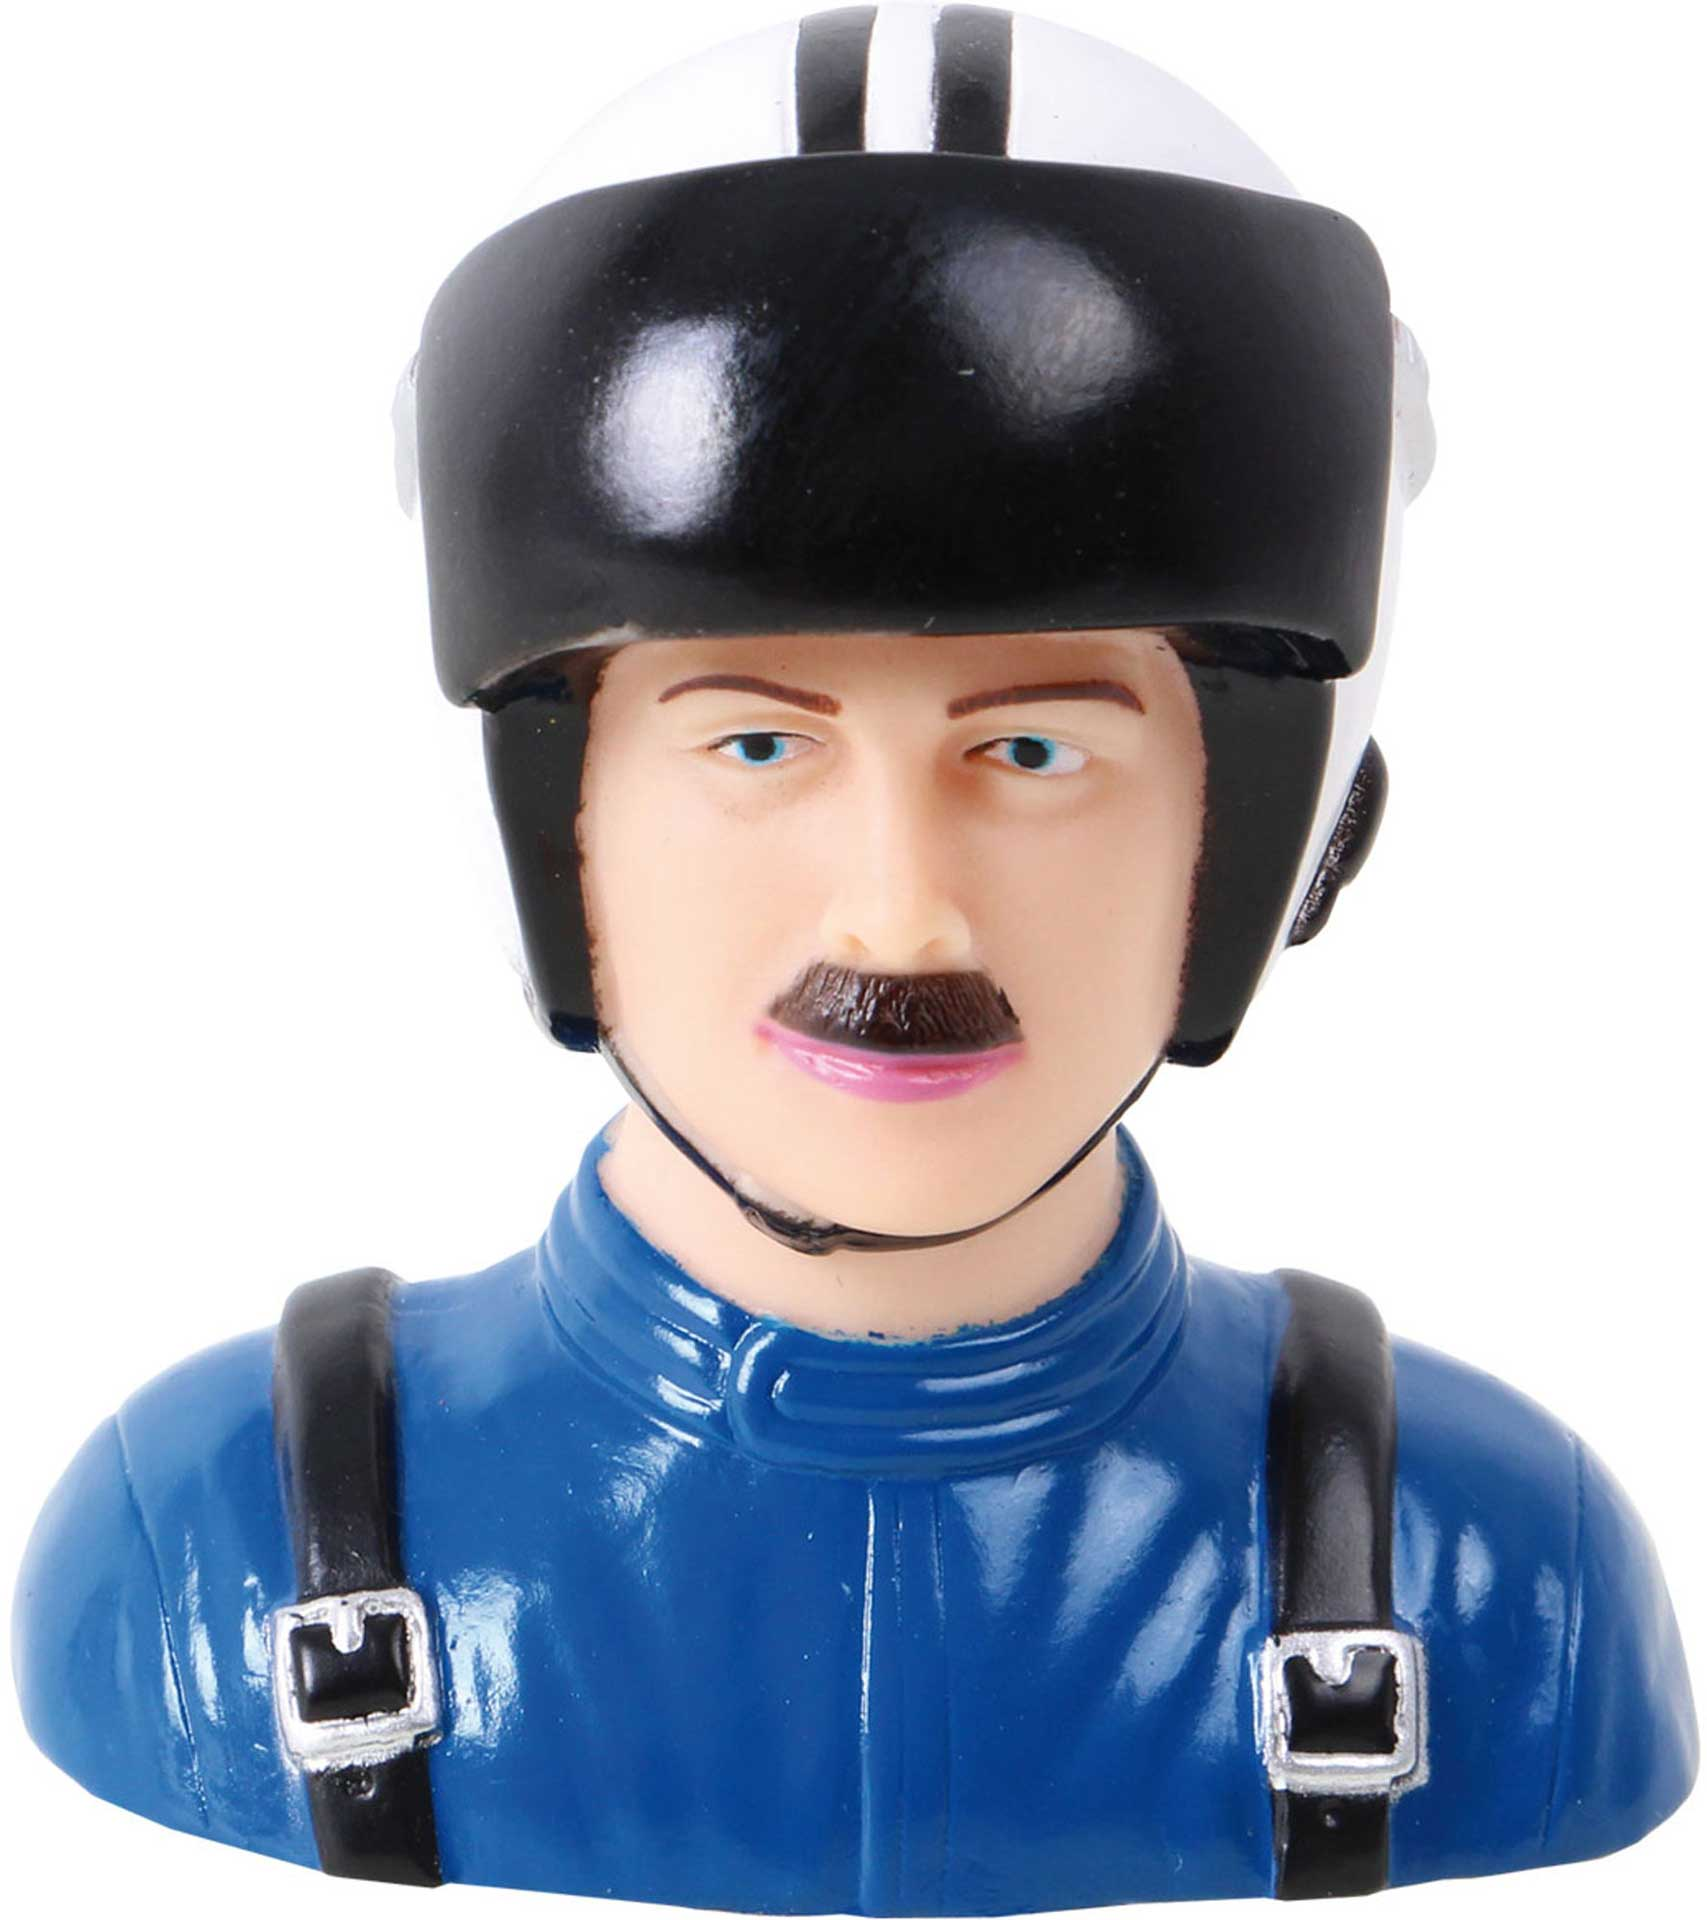 MODELLBAU LINDINGER PILOT CIVIL 1:6 66/43/70MM BLUE